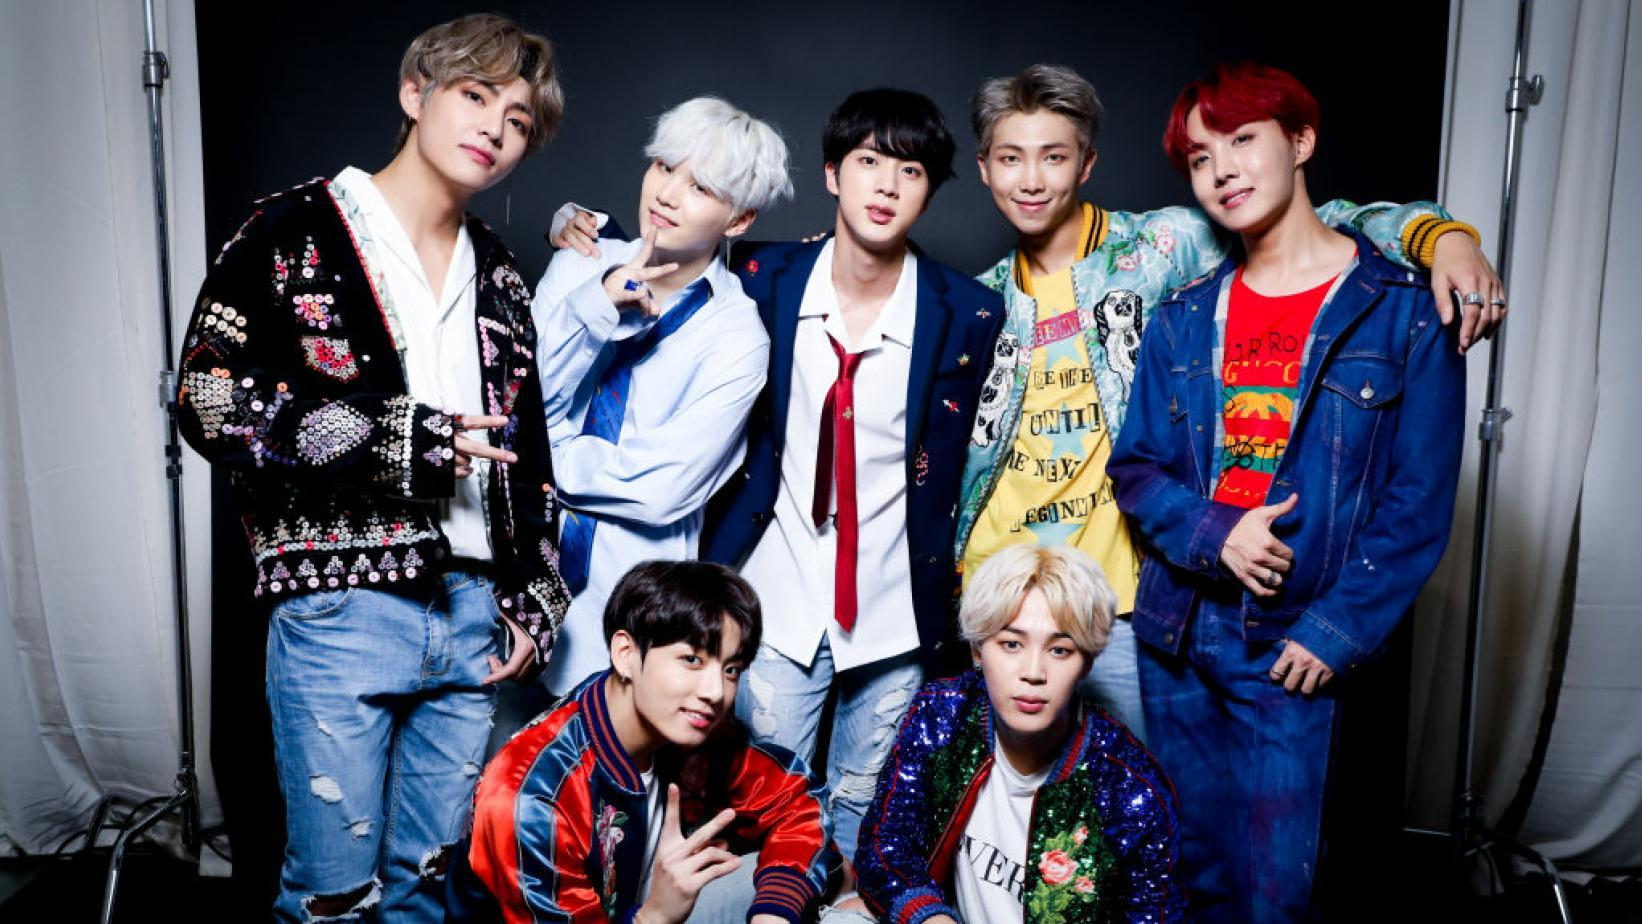 BTS Rise To New Art Pop Height With Euphoria | GRAMMY.com